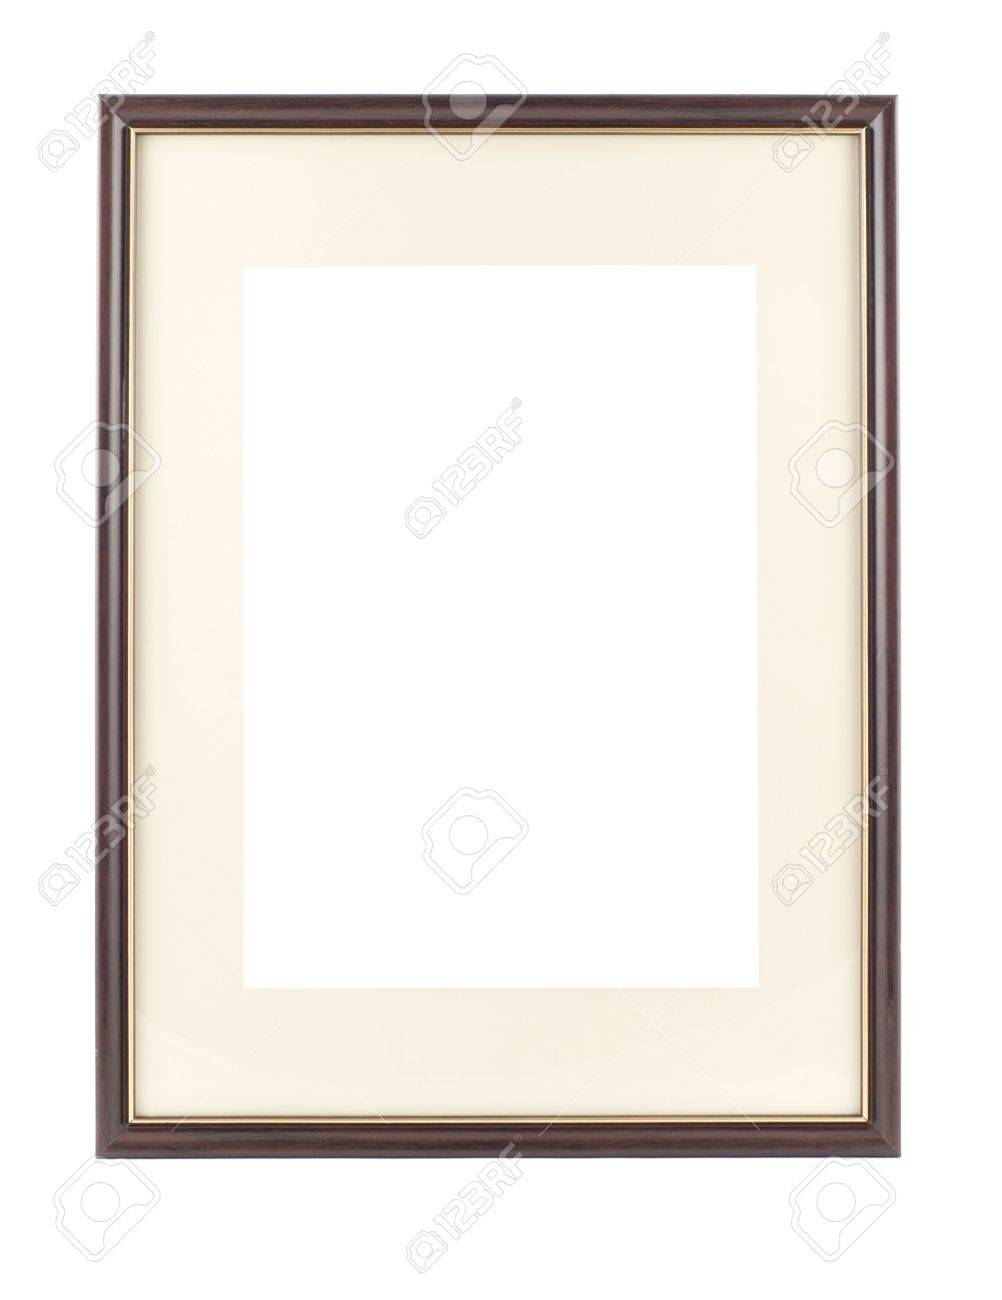 Empty frame for picture or portrait isolated Stock Photo - 6615895